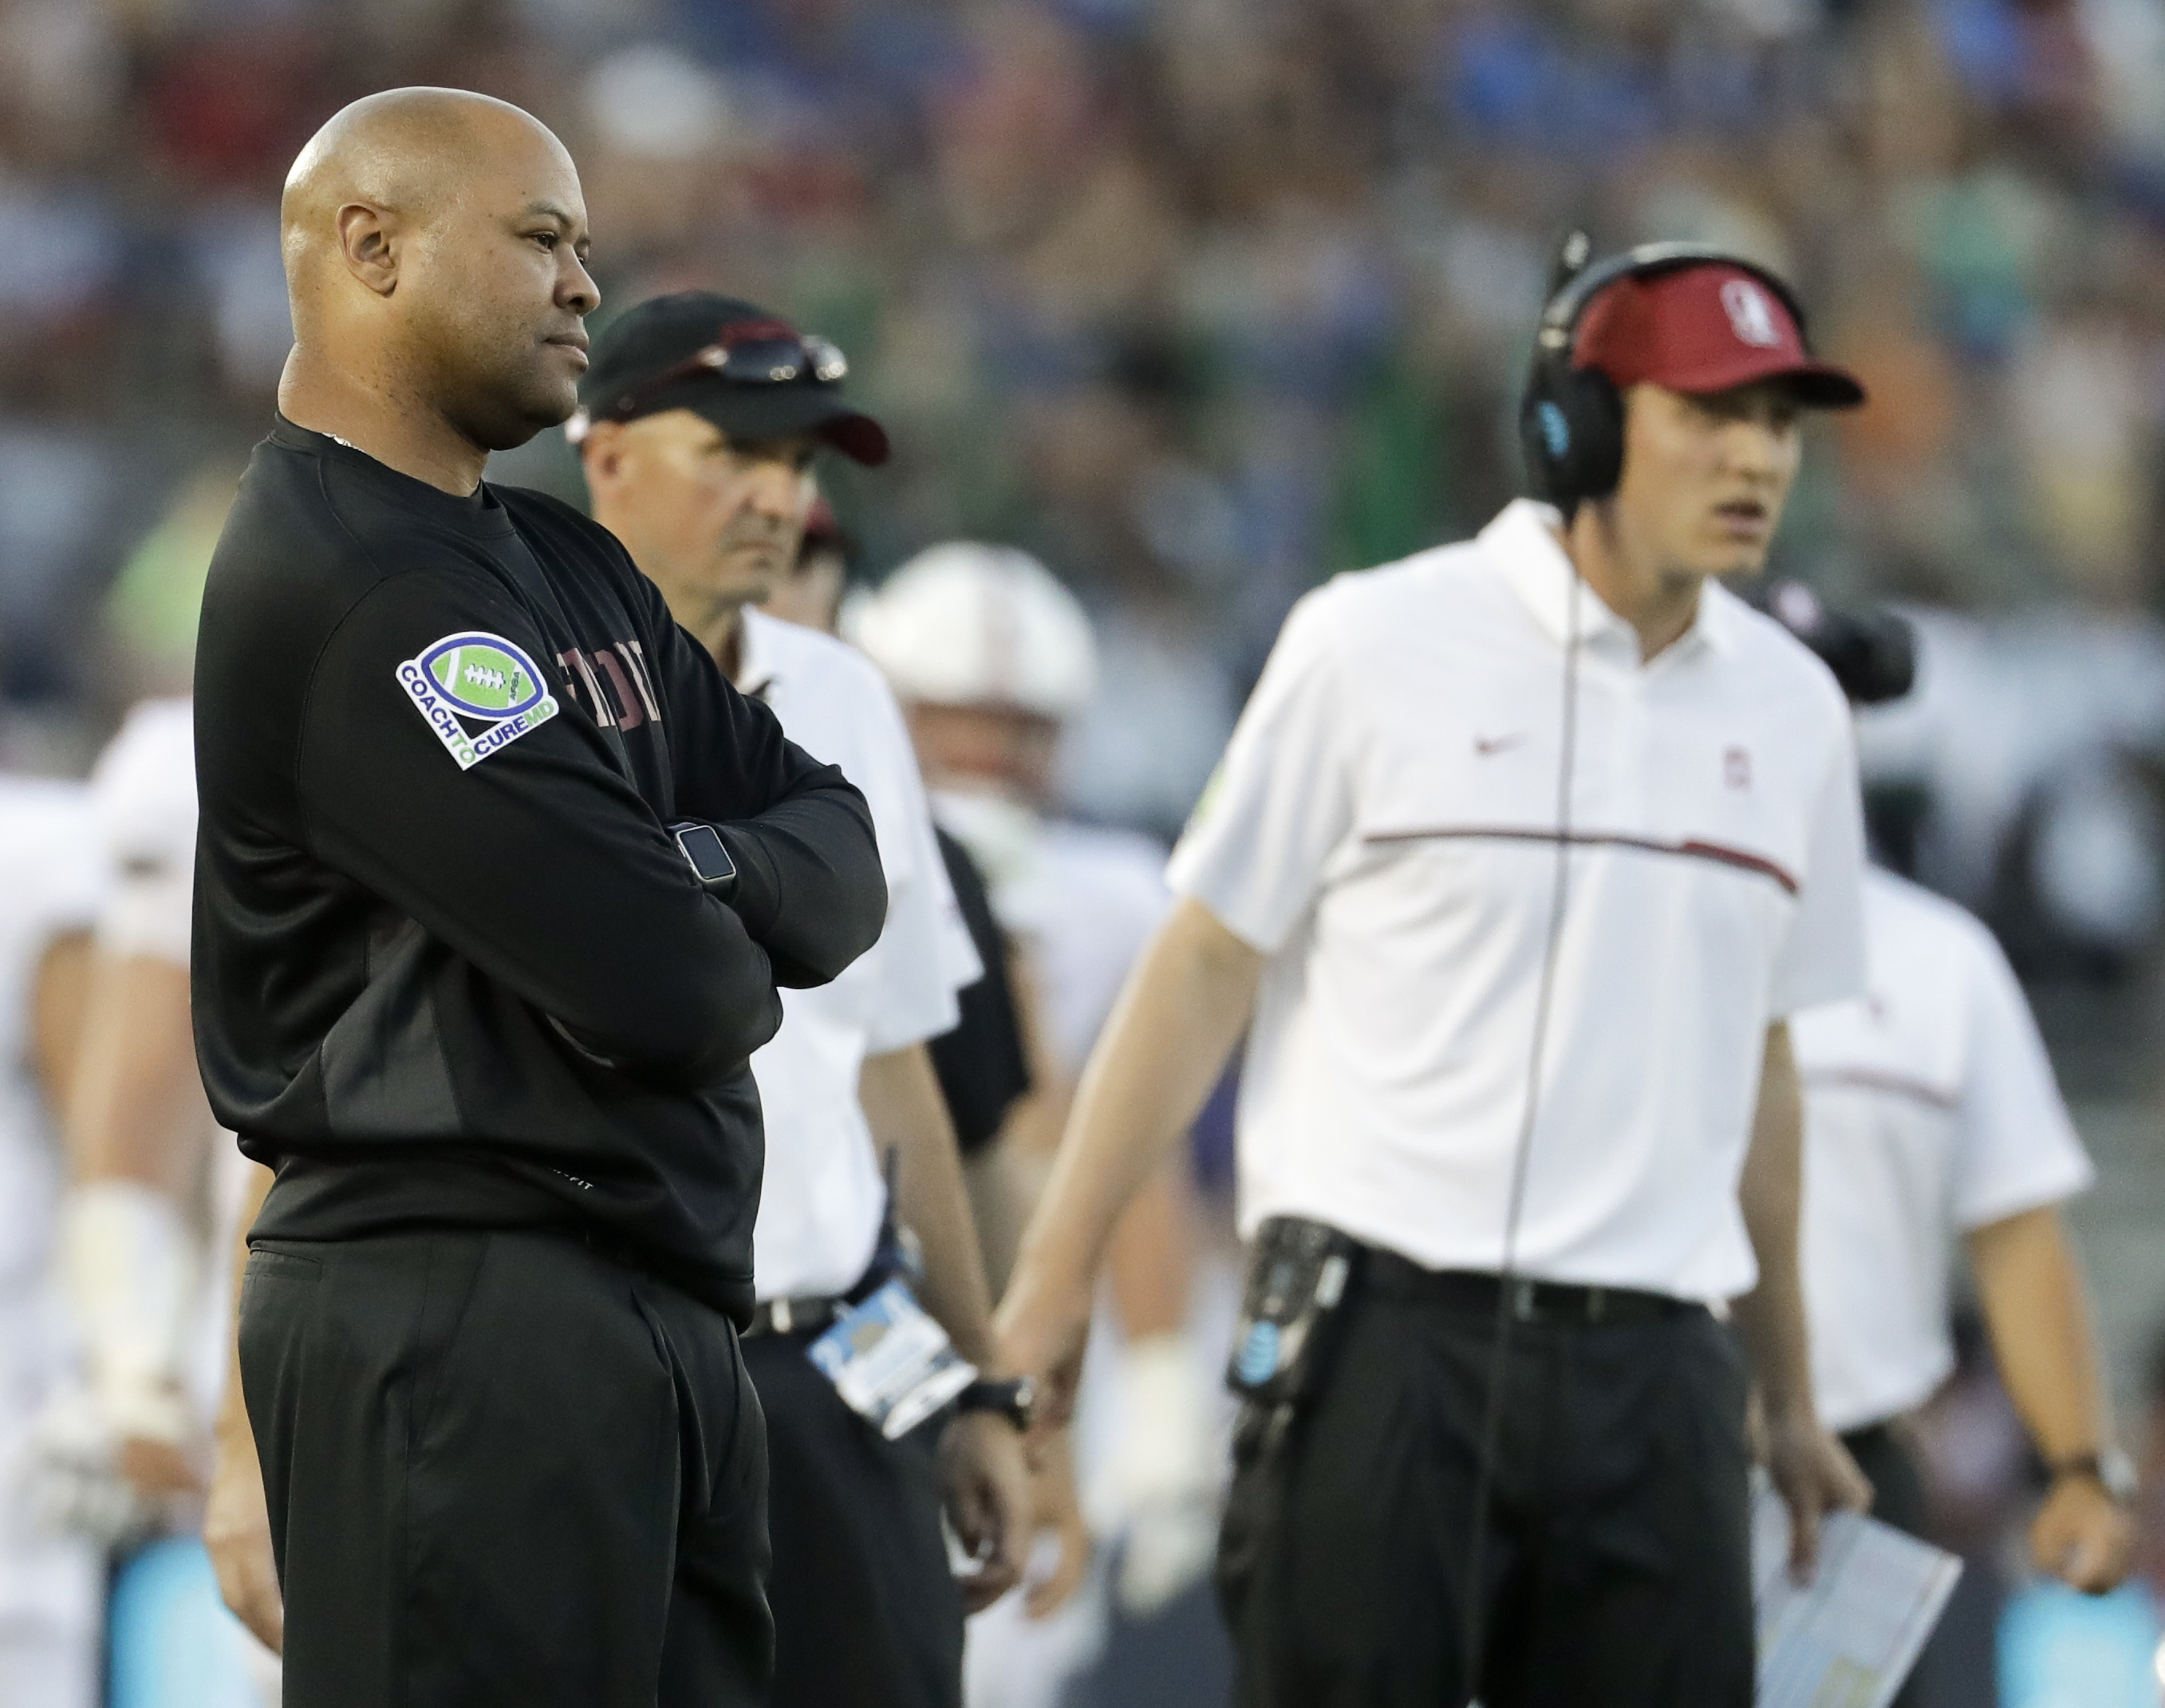 Stanford head coach David Shaw watches during the first half of an NCAA college football game against UCLA in Pasadena, Calif., Saturday, Sept. 24, 2016. (AP Photo/Chris Carlson)